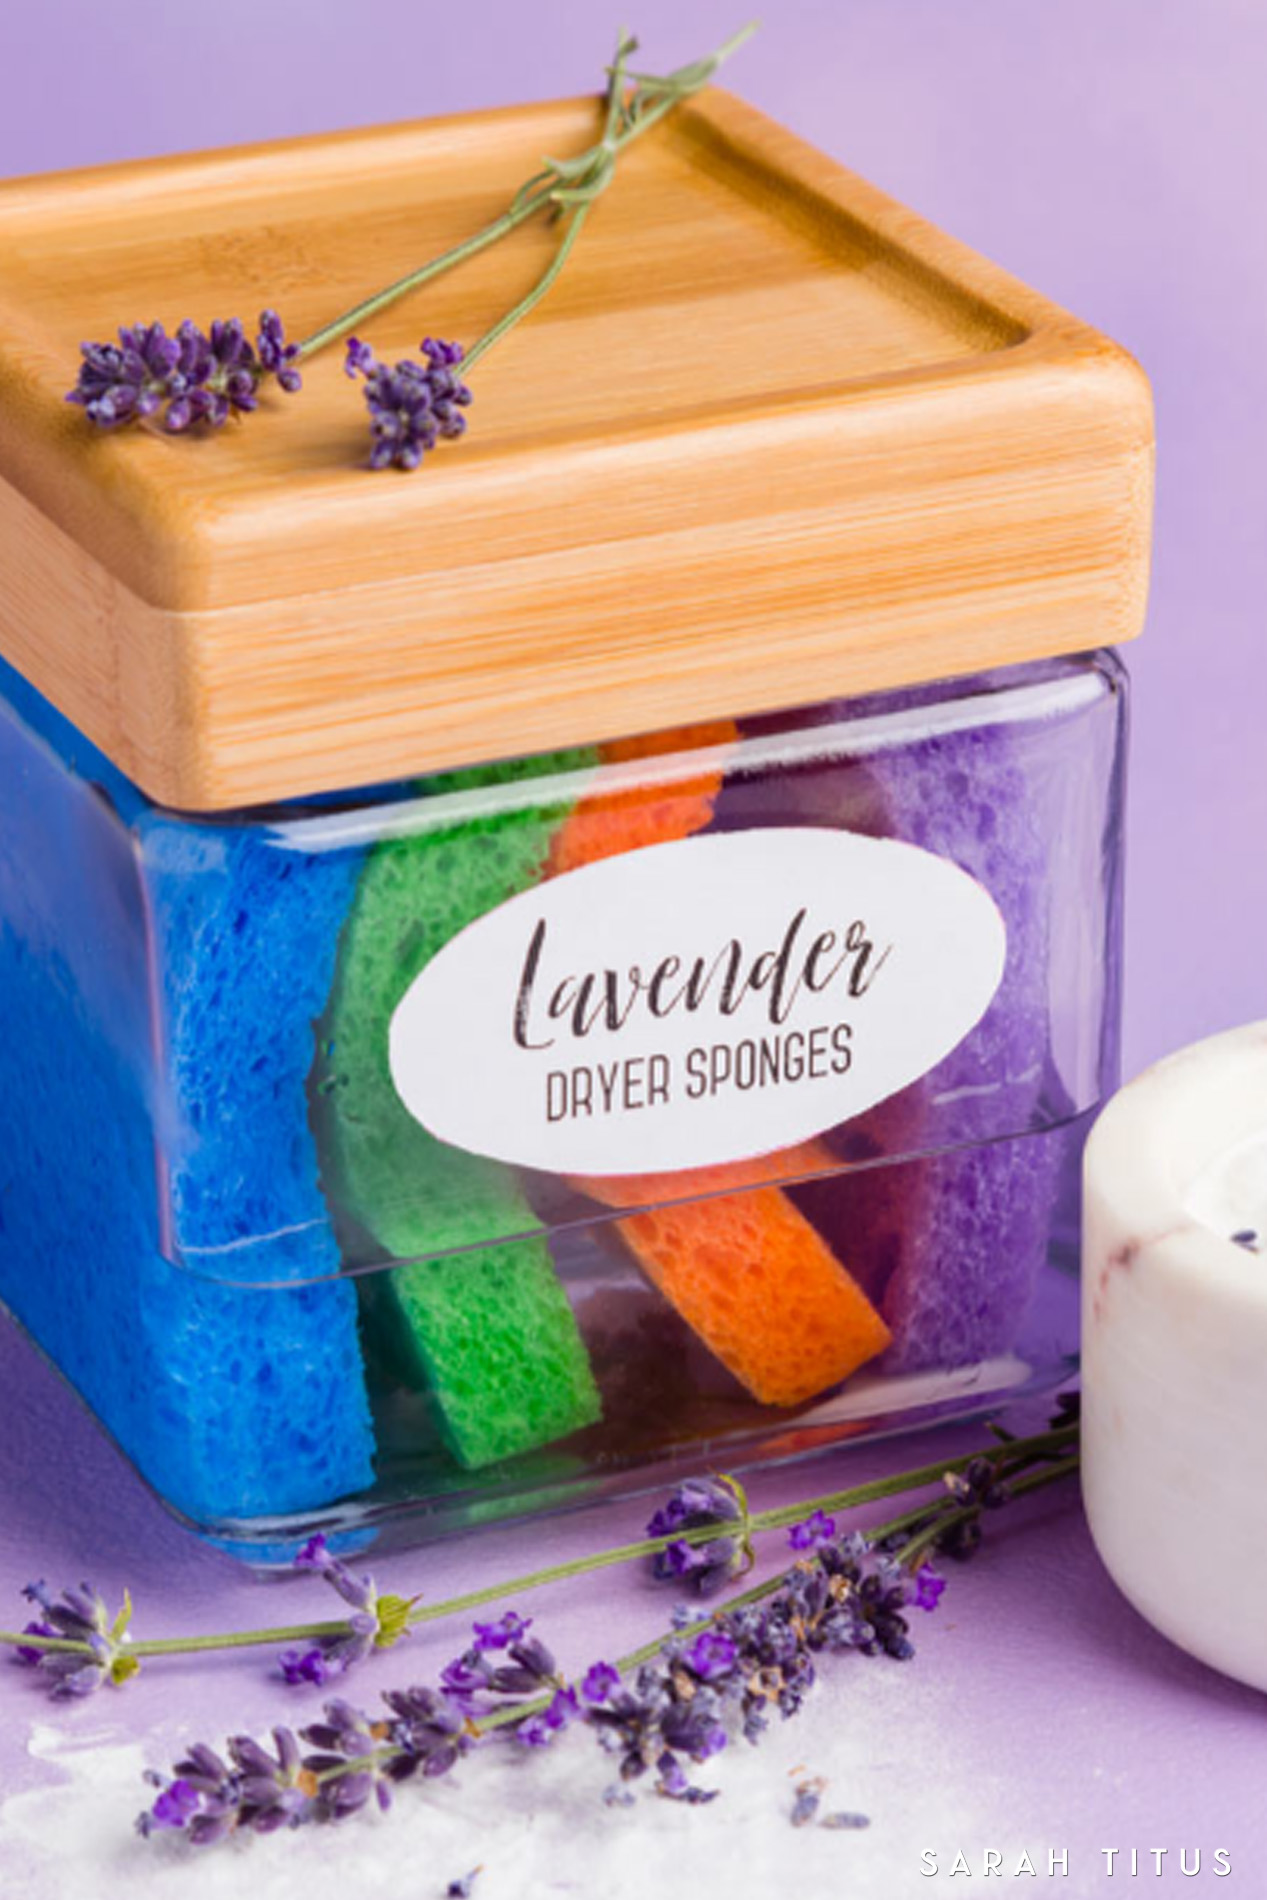 You can make your own lavender essential oil dryer sponges with a few ingredients you already have on hand, and you can save money, and have fresh smelling clothes for pennies! #diyessentialoils #essentialoils